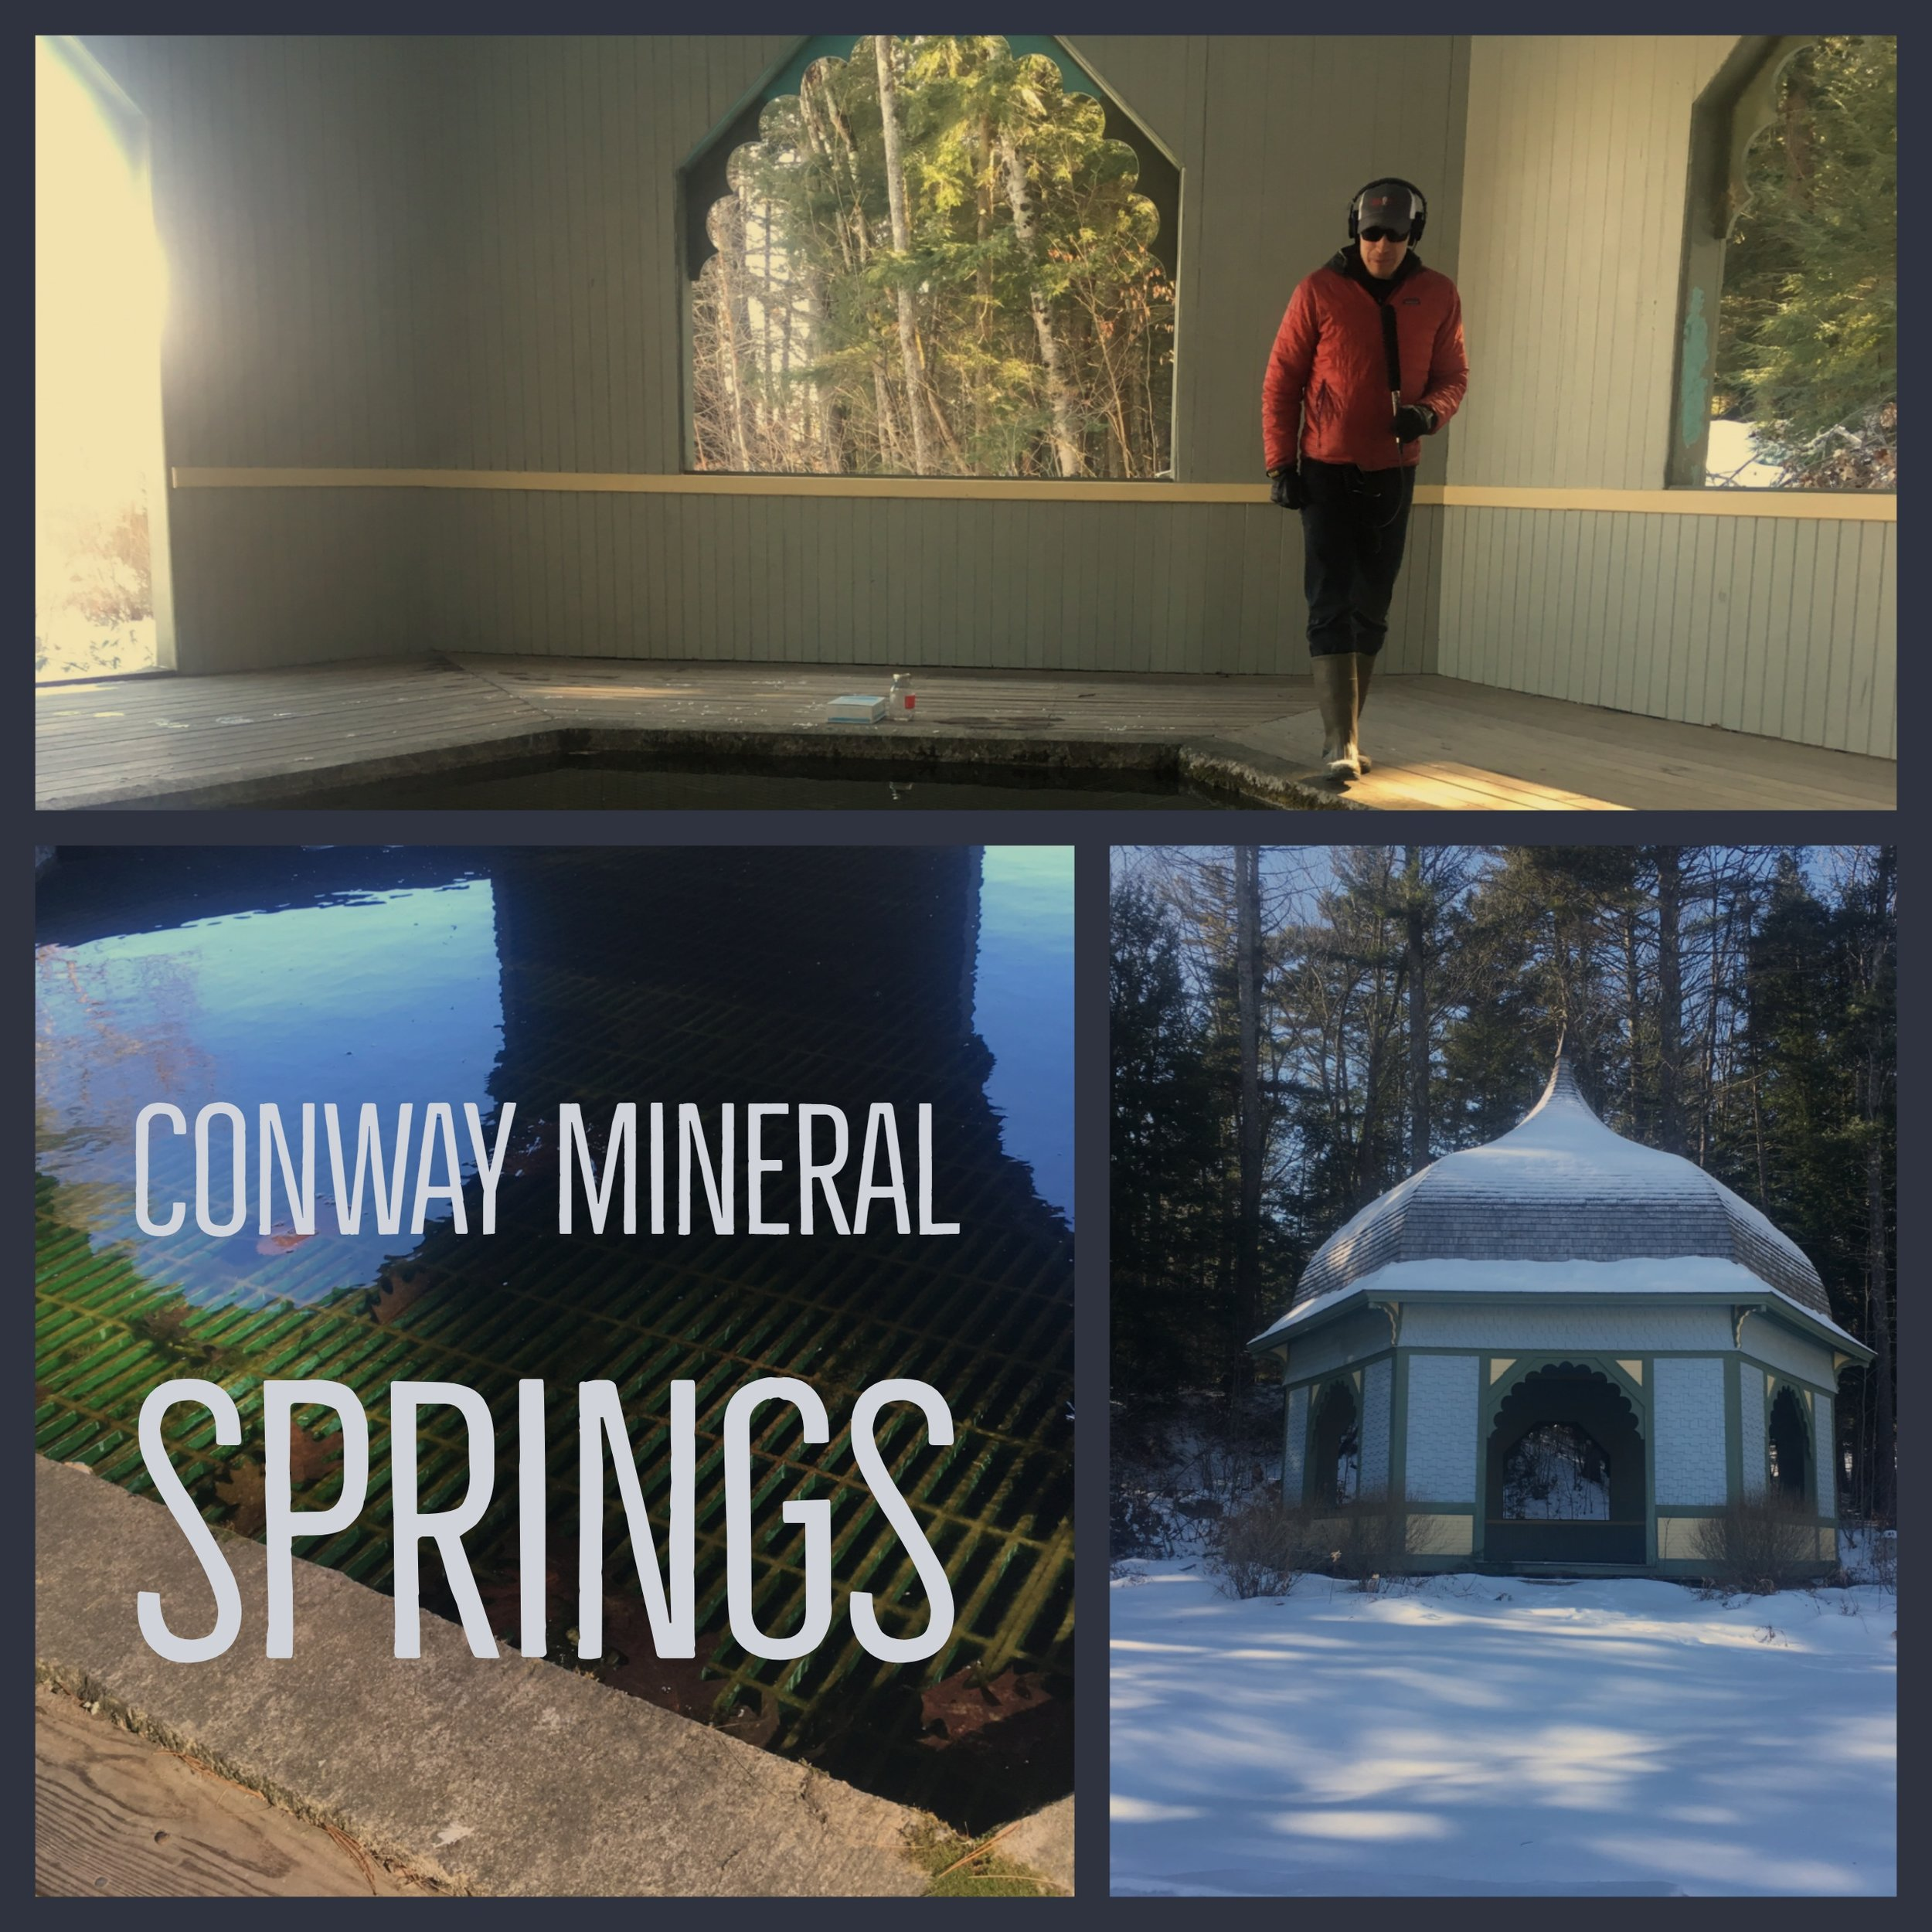 - We had water from Conway Mineral Spring in North Conway, New Hampshire, tested for a variety of contaminants and found that it did violate EPA standards for Total Coliform Bacteria. Click here to see the complete results.